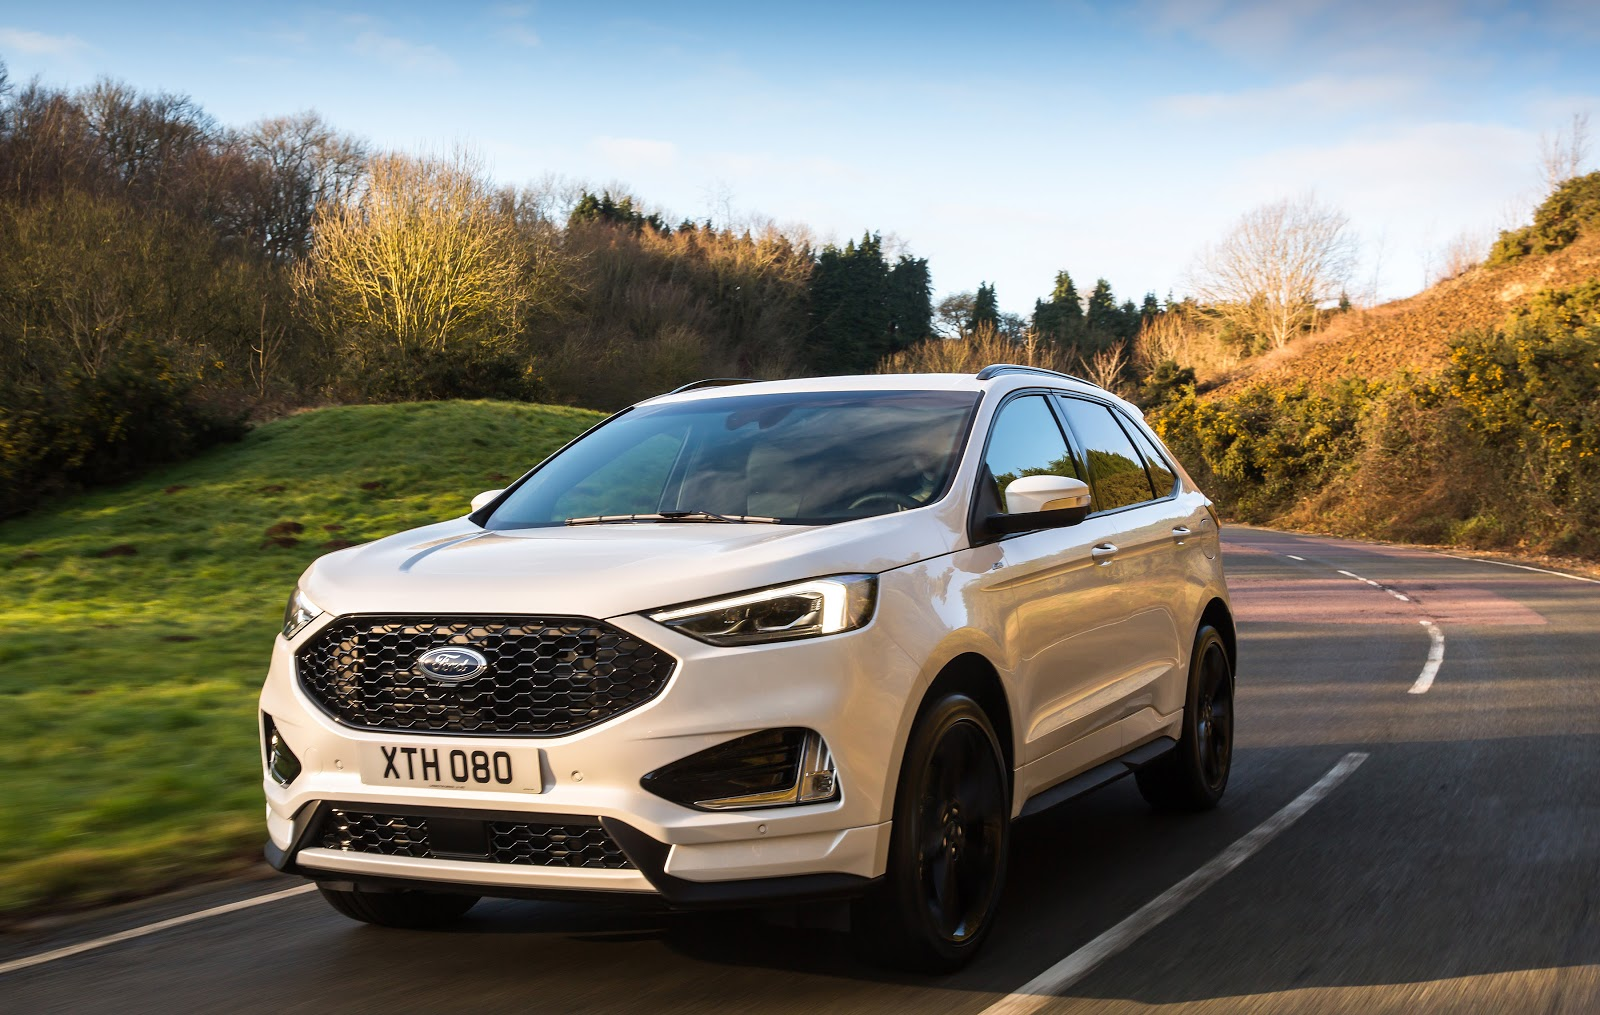 The New Ford Edge Offers A Comprehensive Range Of Camera And Sensor Based Driver Assistance Technologies Designed To Make Journeys More Comfortable And